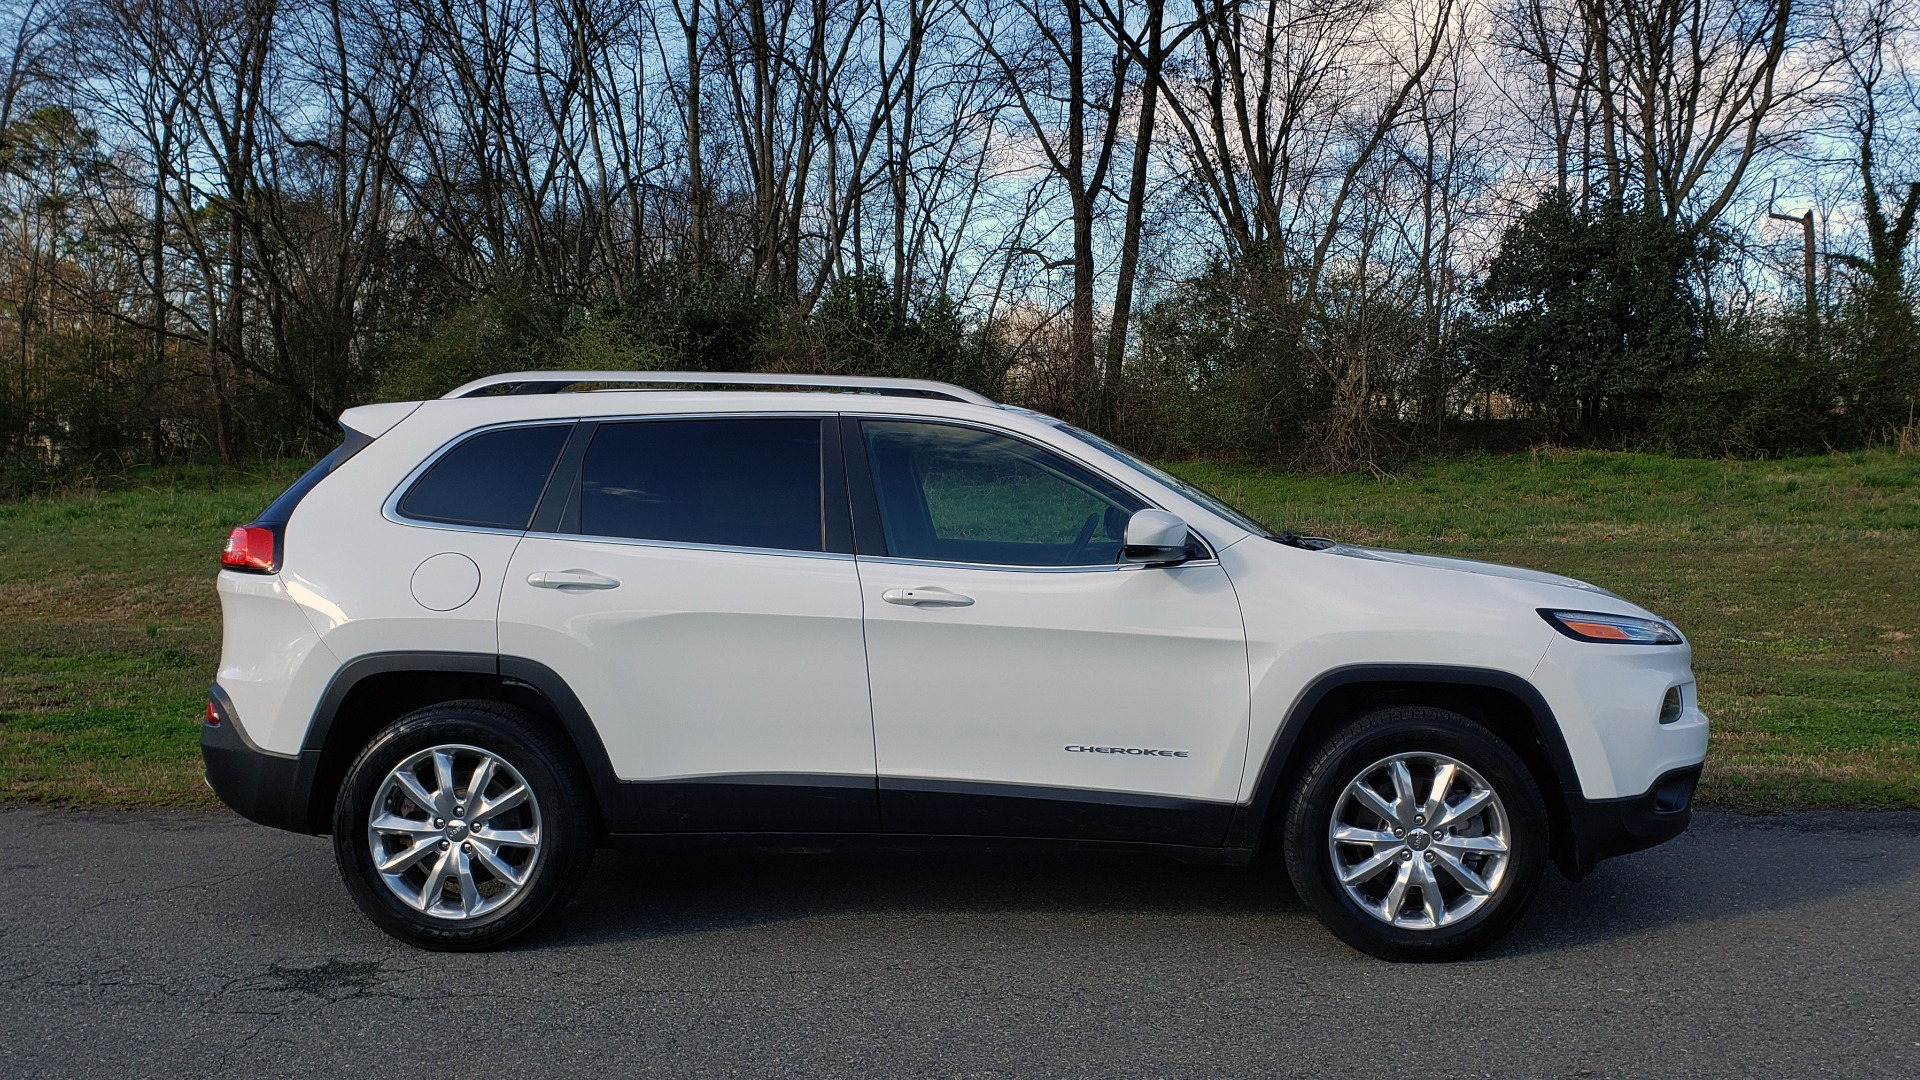 Used 2014 Jeep CHEROKEE LIMITED 4WD / 3.2L V6 / 9SPD AUTO / DUAL-SUNROOF / TOW for sale $18,995 at Formula Imports in Charlotte NC 28227 7